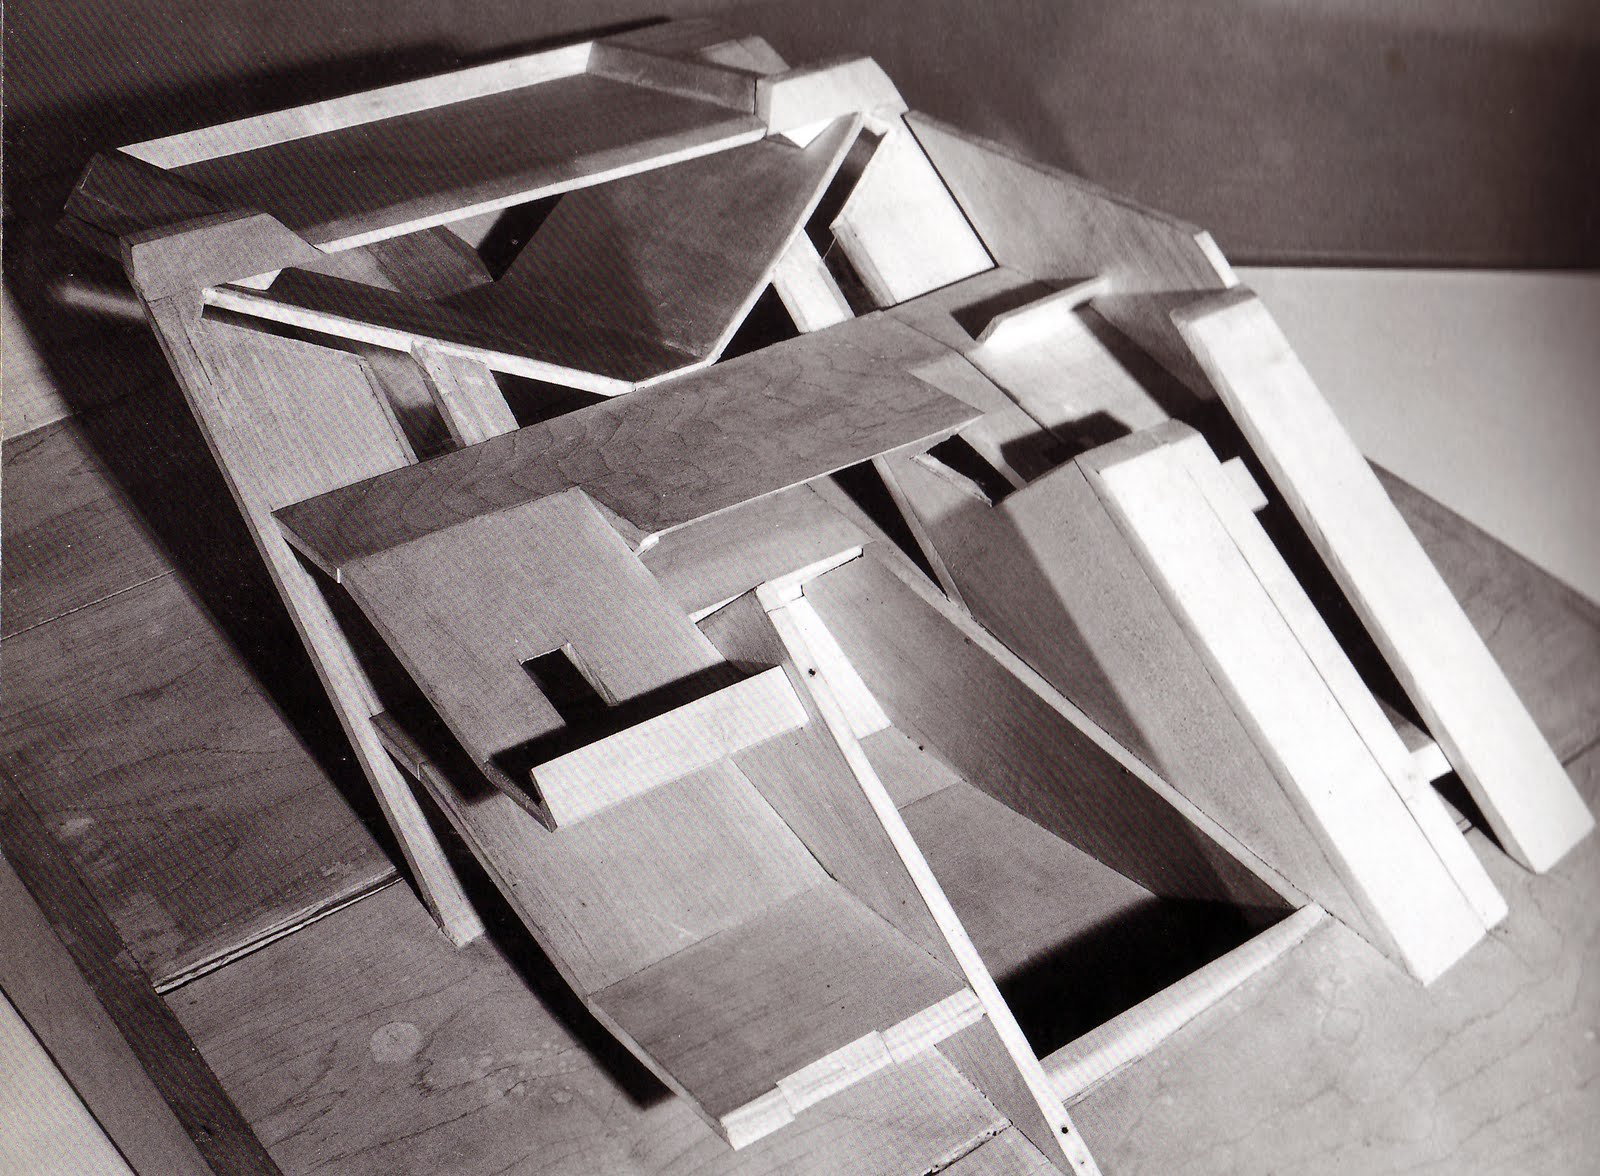 Folded Plane Architecture Models